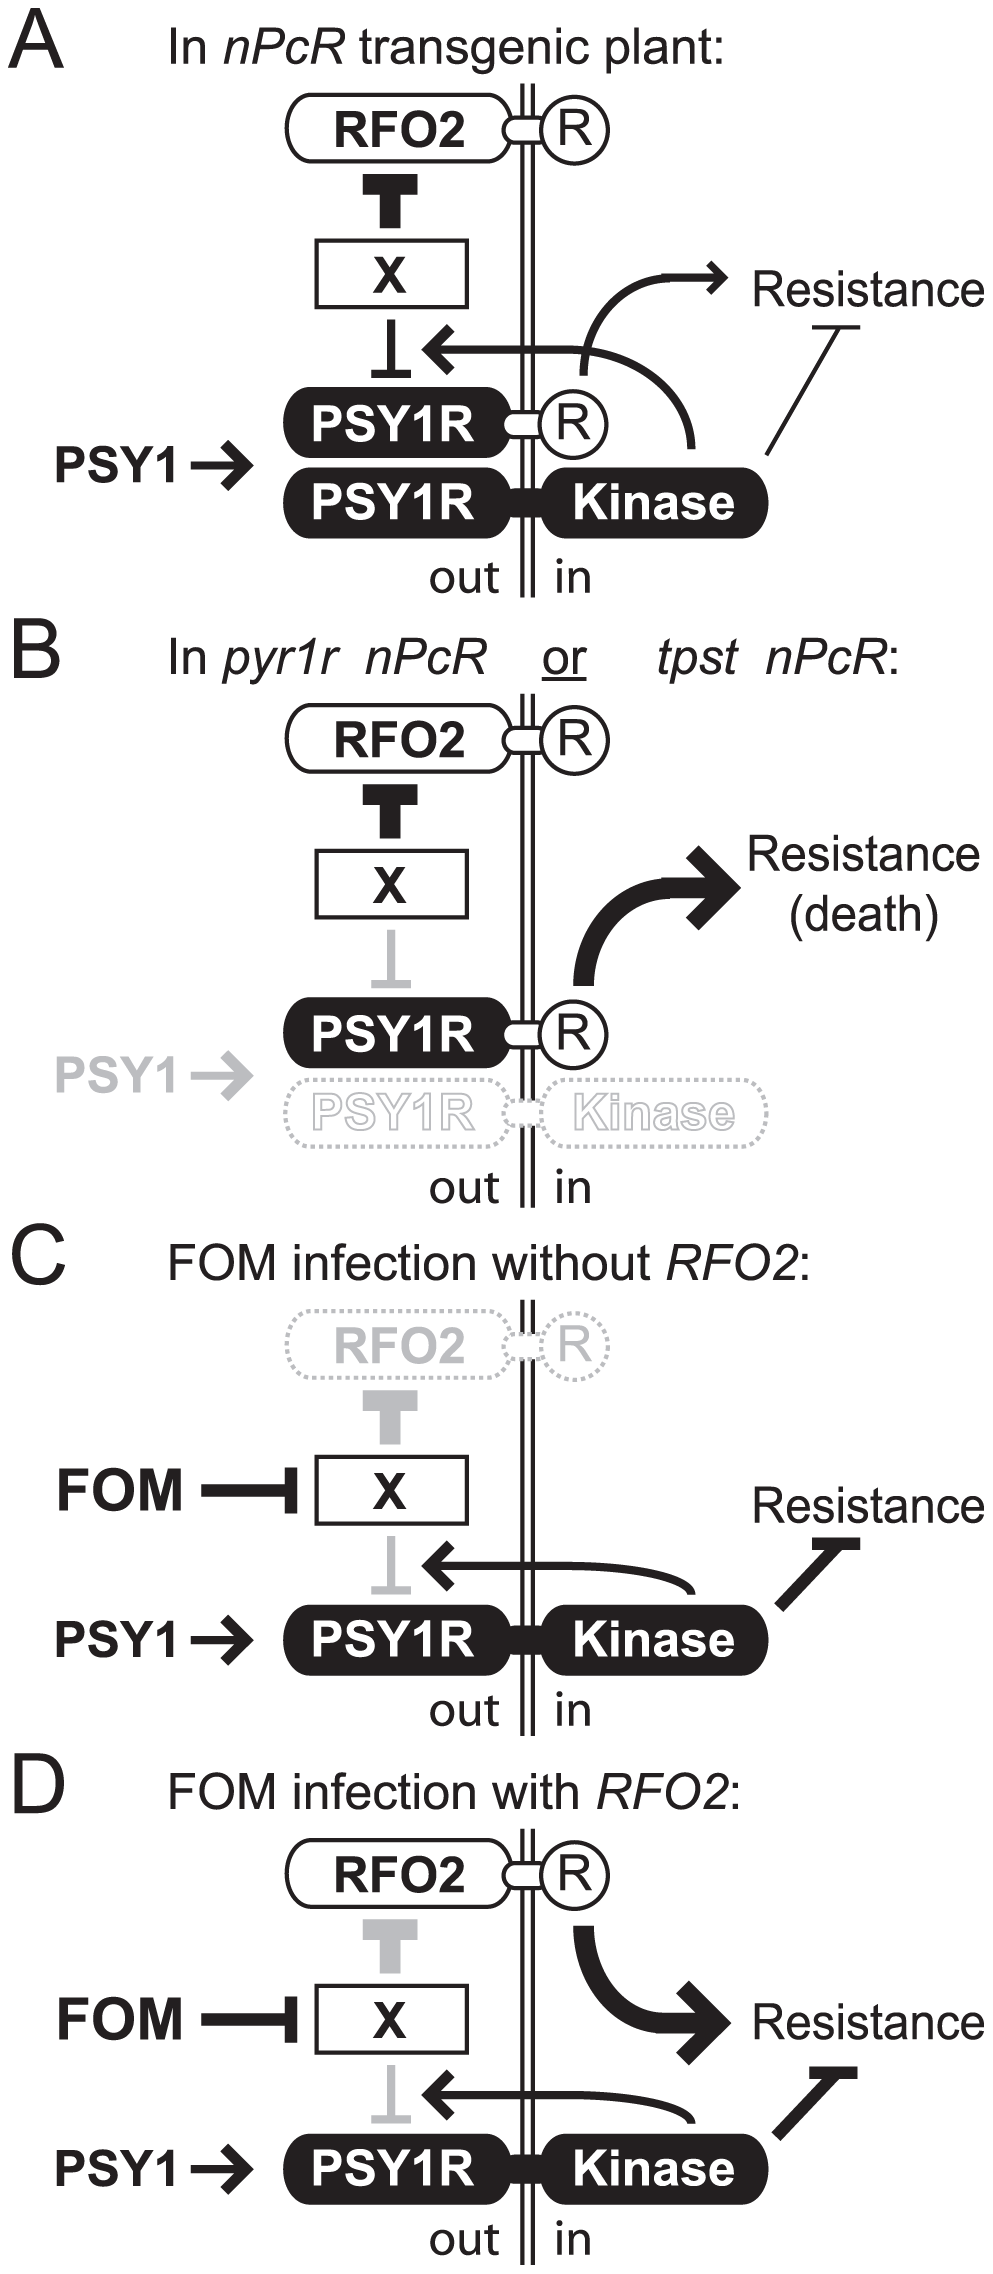 Model for RFO2-mediate resistance.